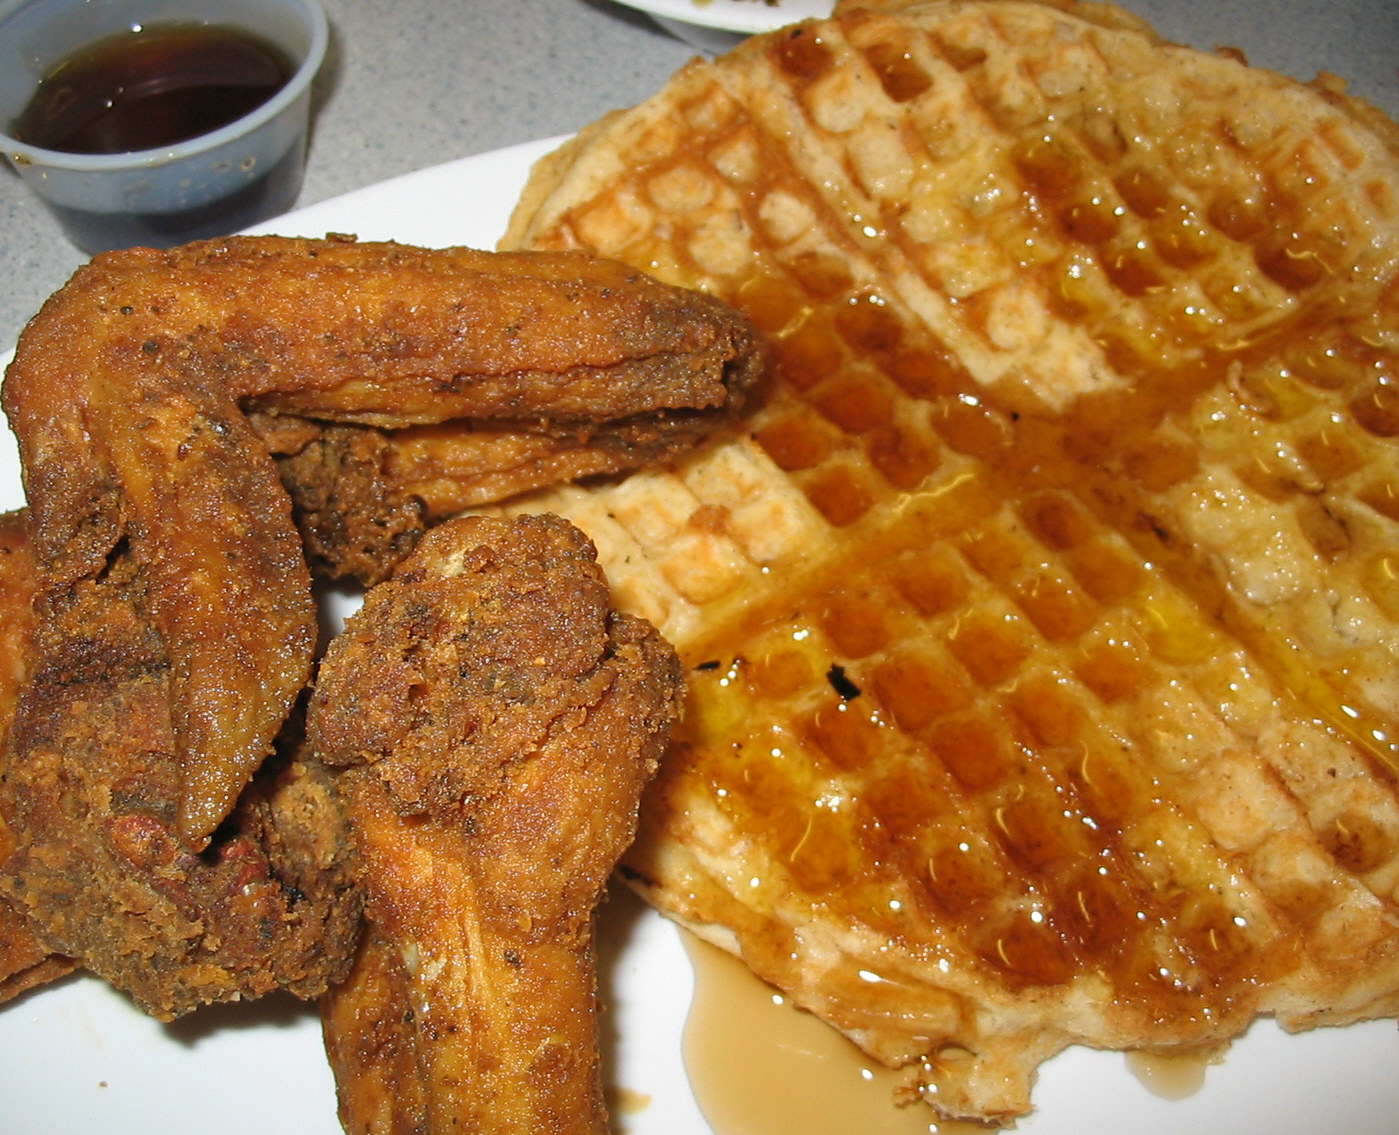 chicken-and-waffle.jpg